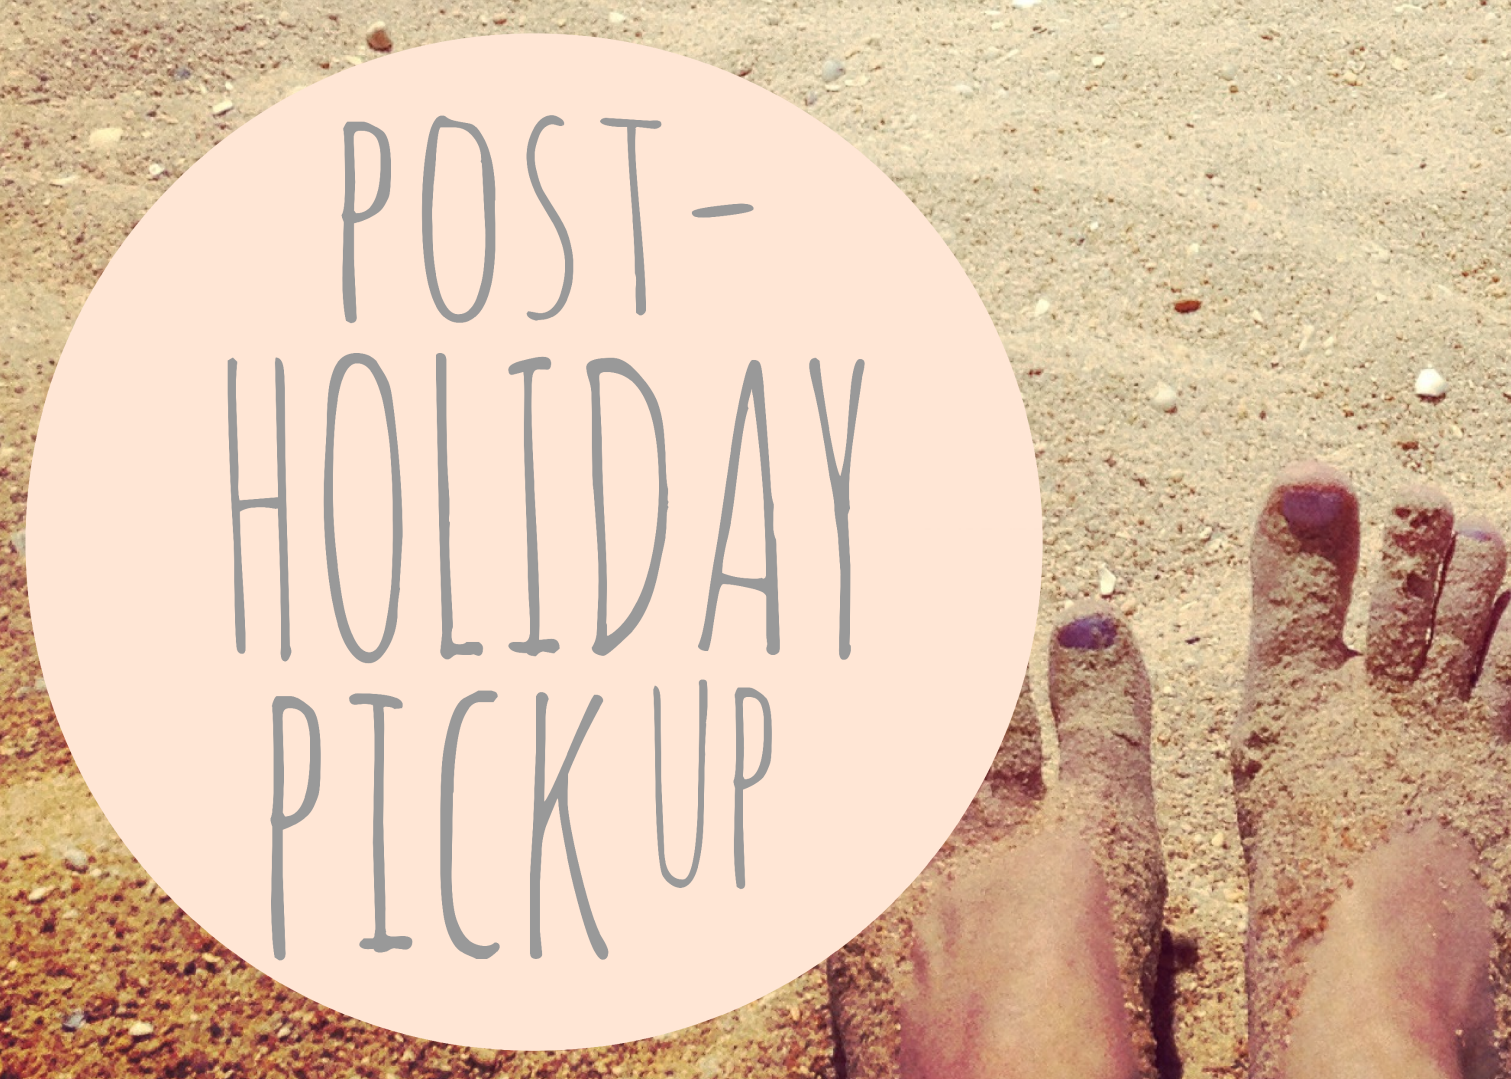 Post-holiday pick up header feet beach